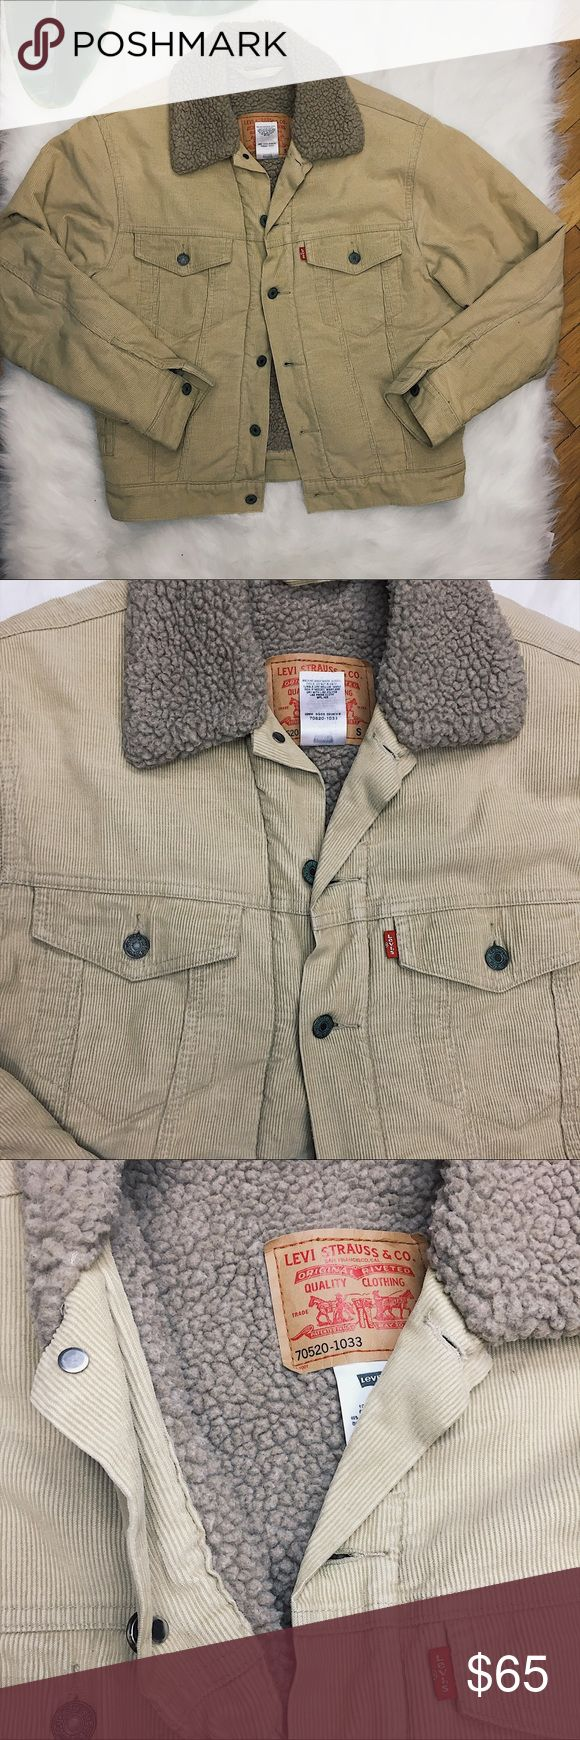 ✨VINTAGE✨MENS LEVIS SHERPA TRUCKER CORDUROY JACKET Vintage  MENS Levi trucker Sherpa jacket Size S 100% cotton Very small stain on hem of sleeve - should come out Levi's Jackets & Coats